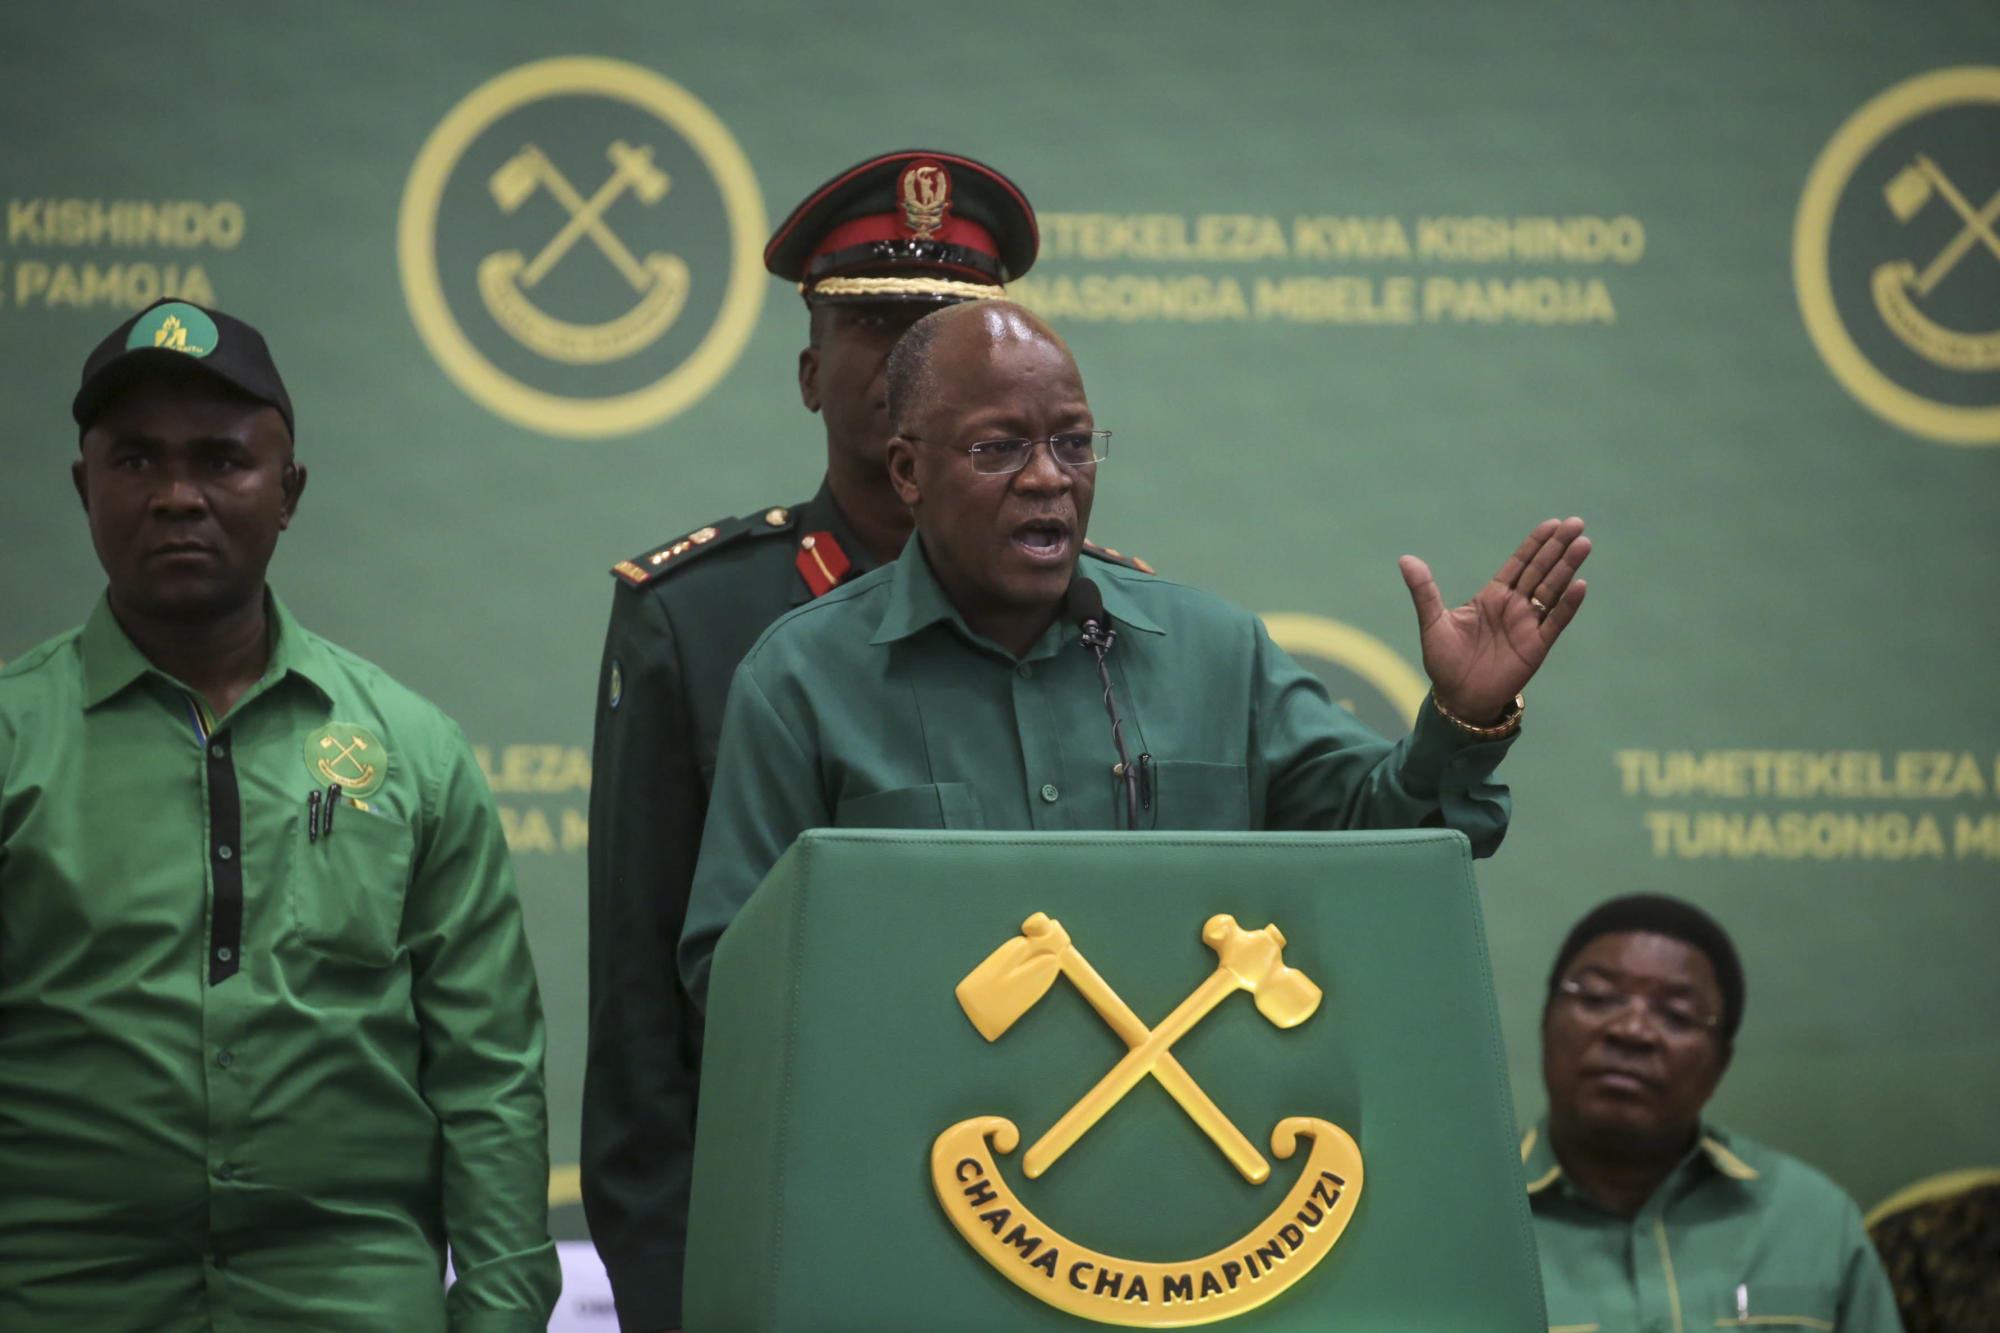 Observers say Tanzania's presidential vote is already flawed